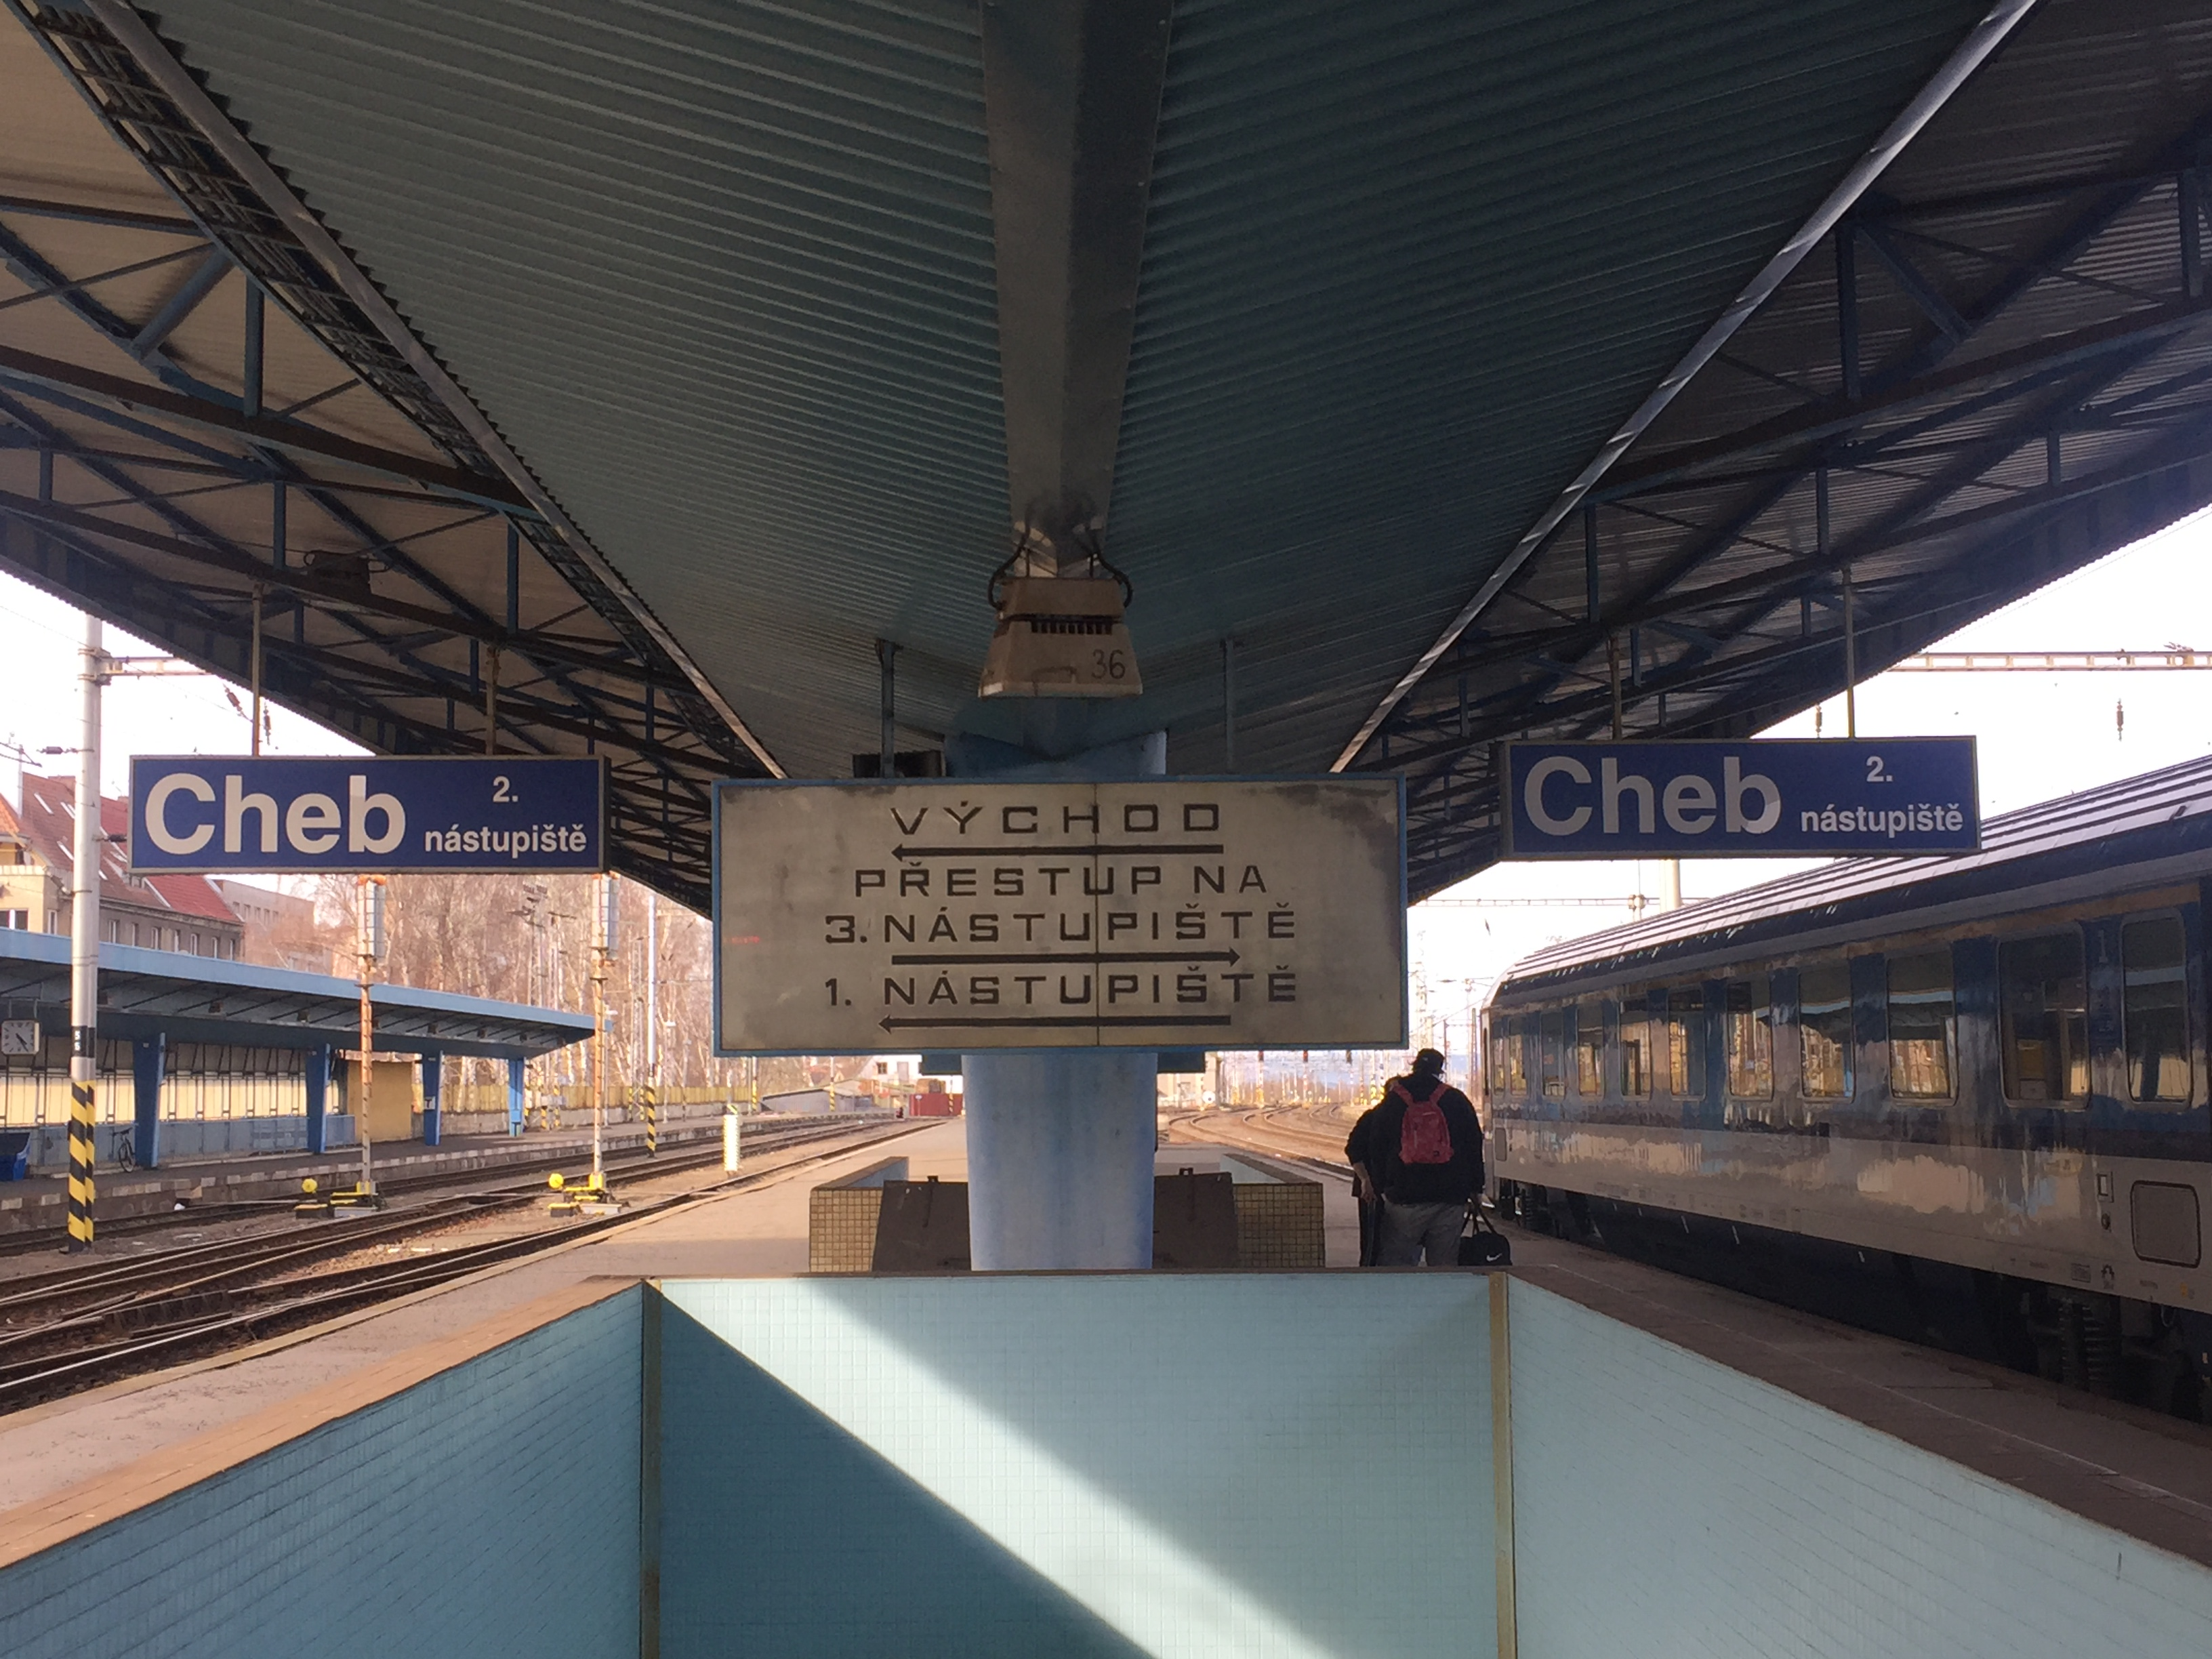 Cheb Station